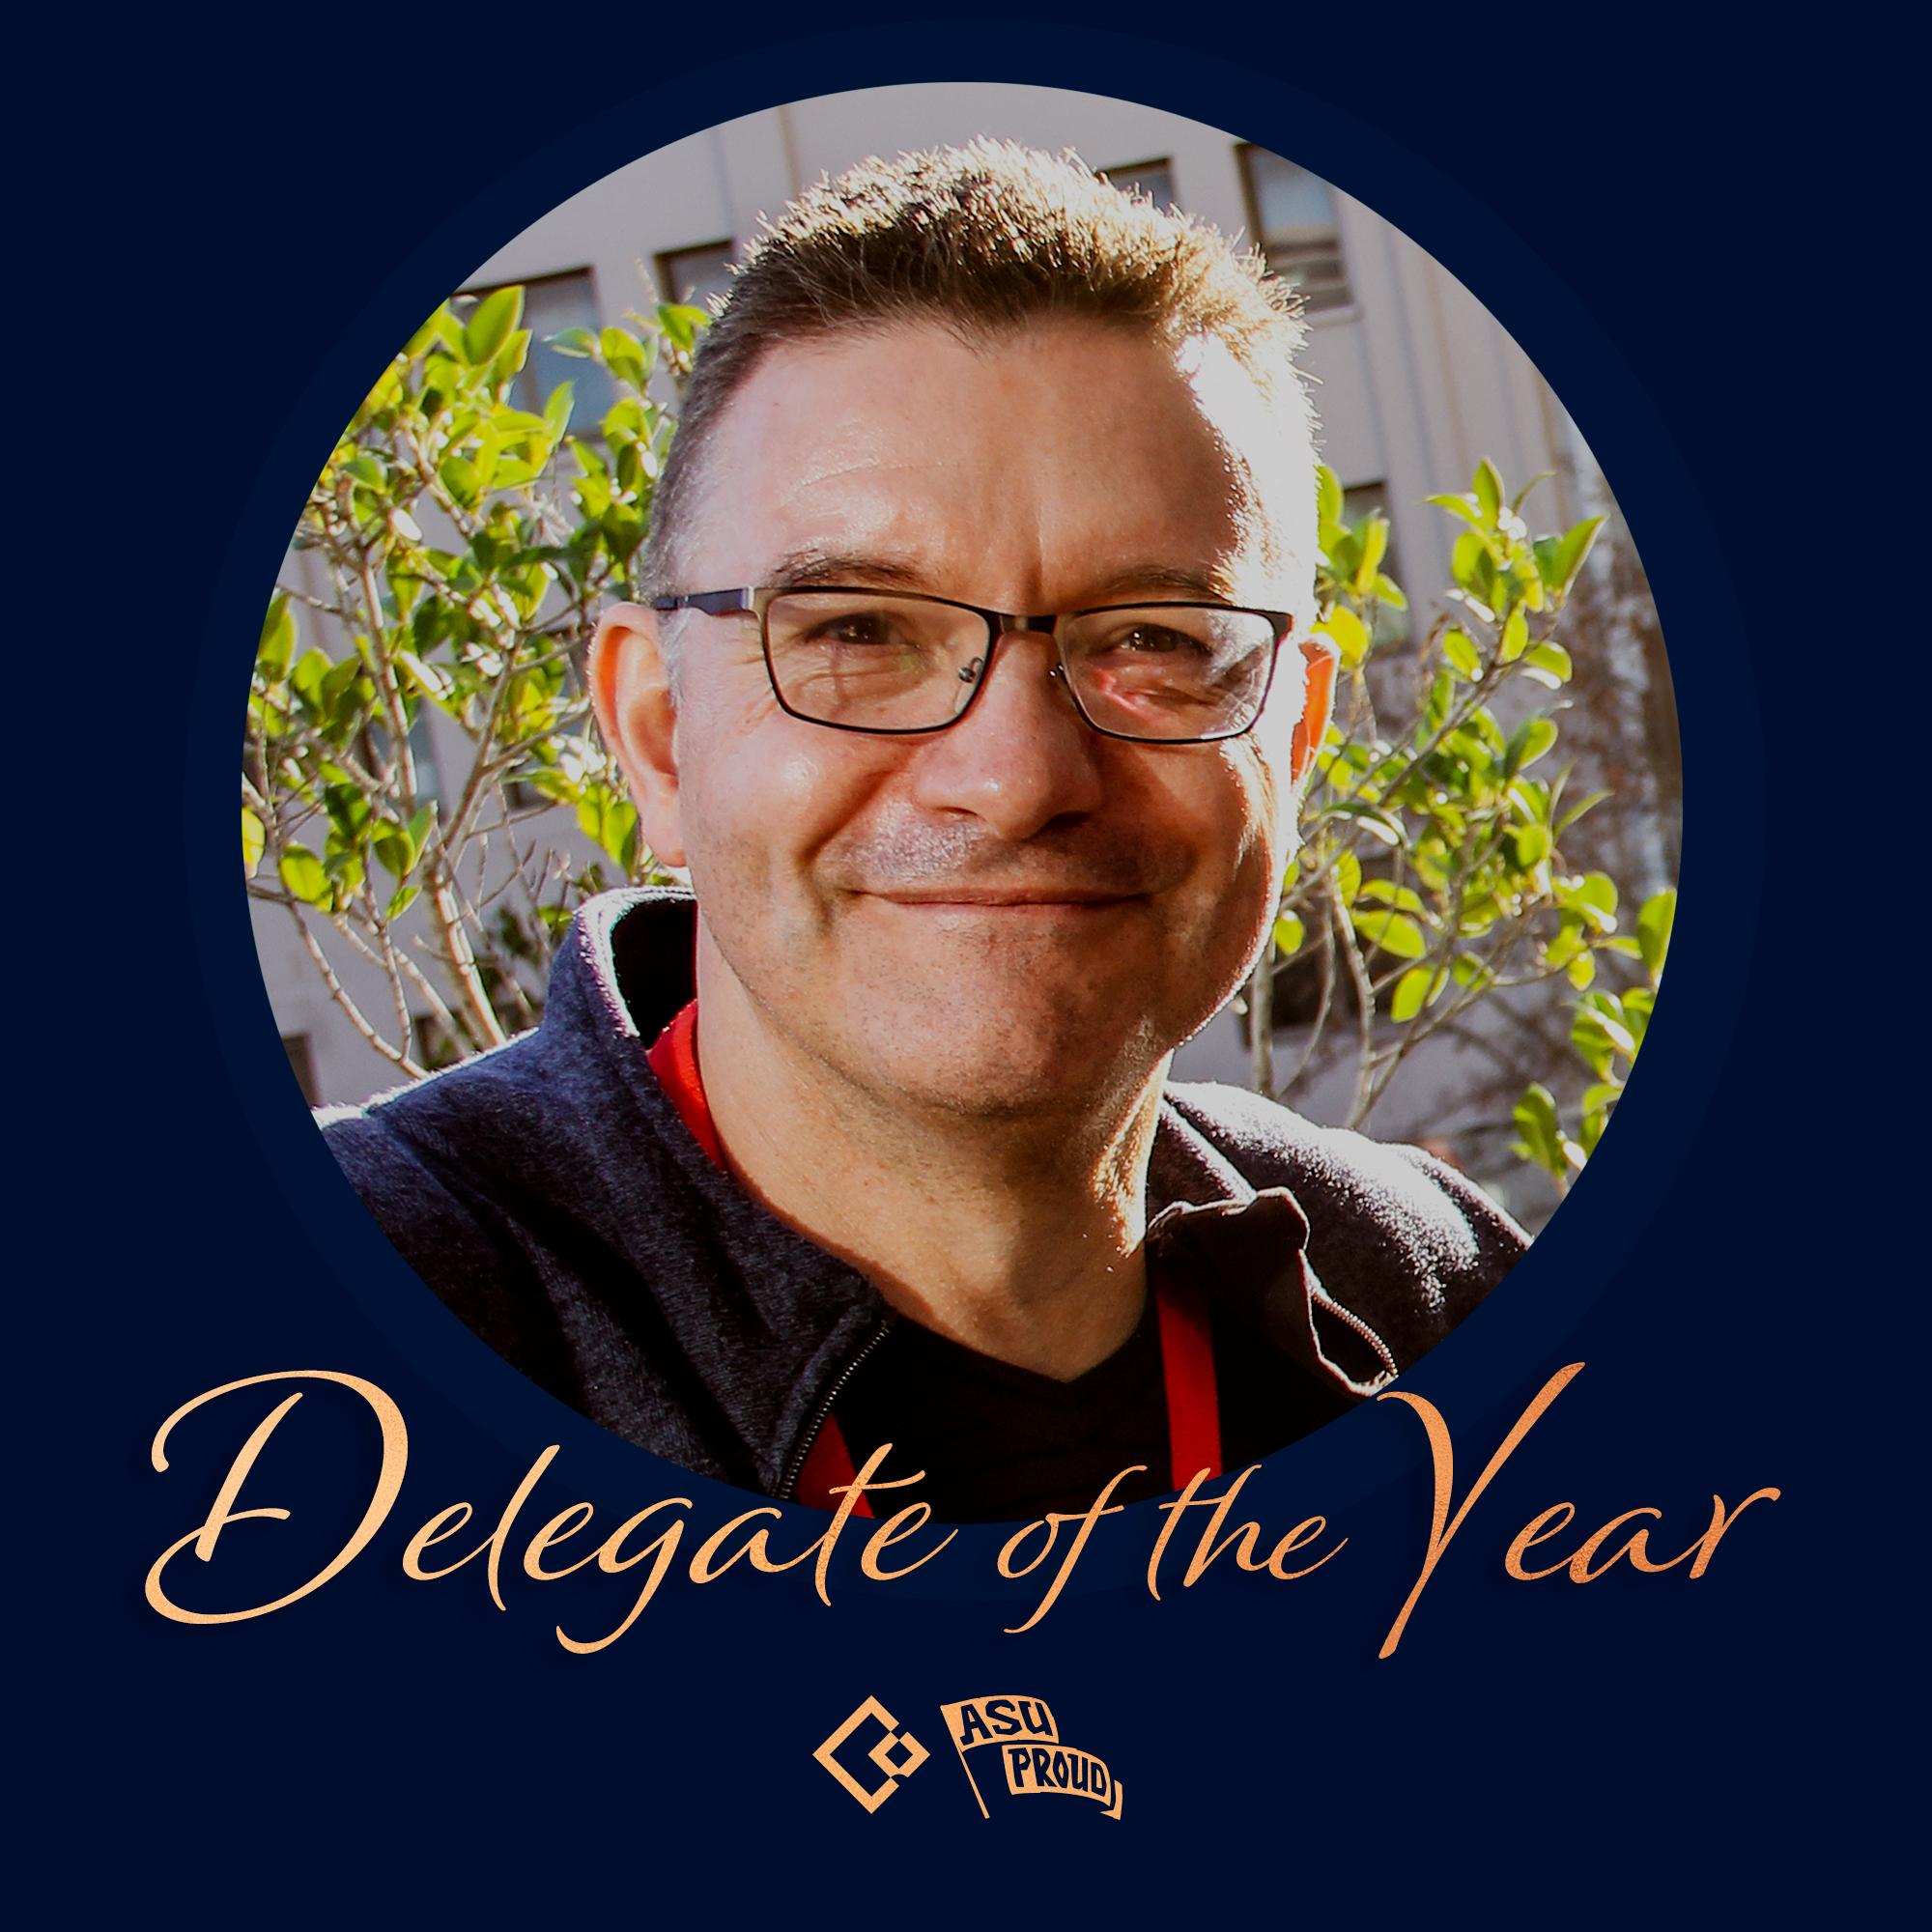 Andrew Sheehan wins Delegate of the Year 2019